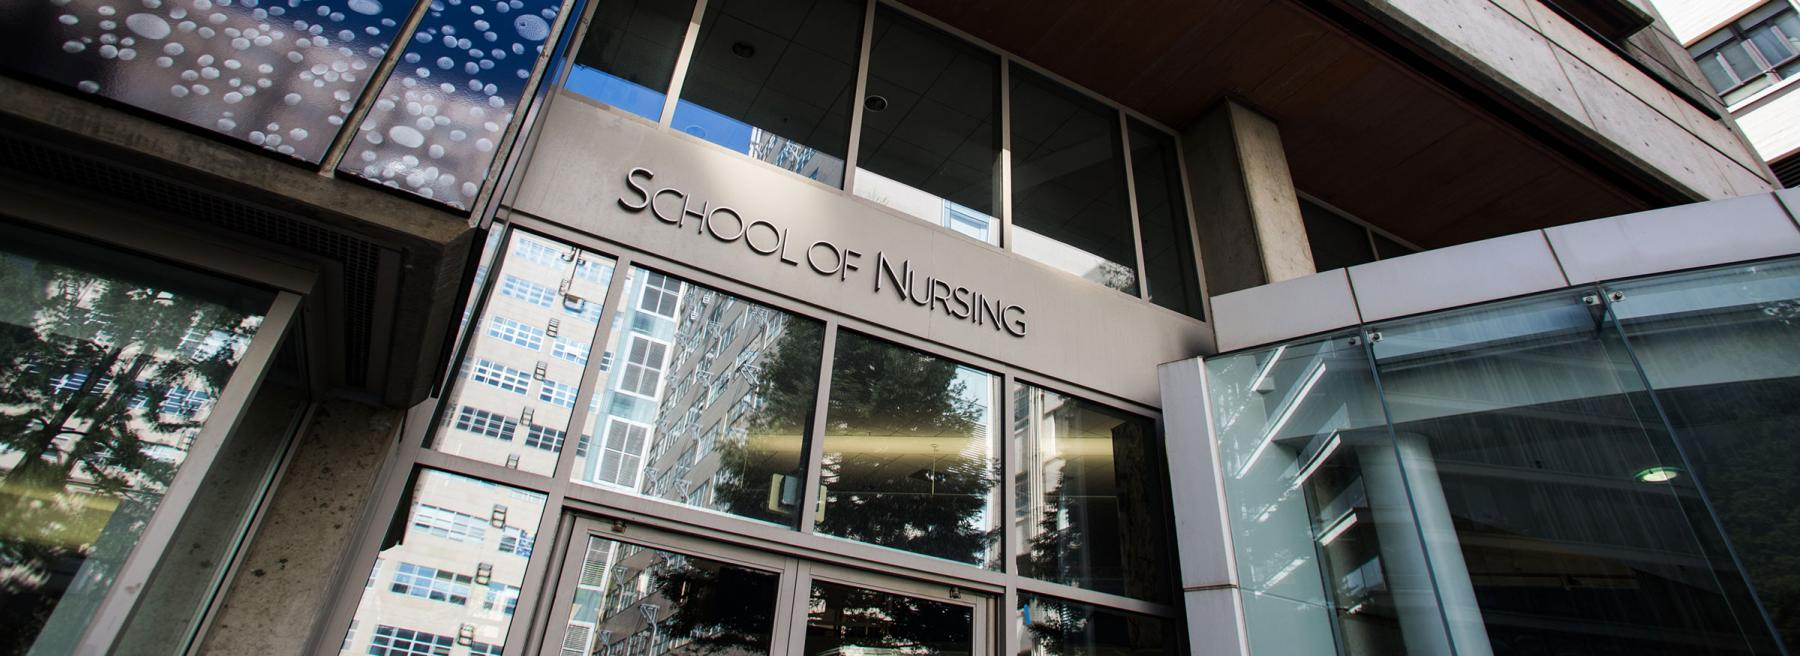 School of Nursing exterior